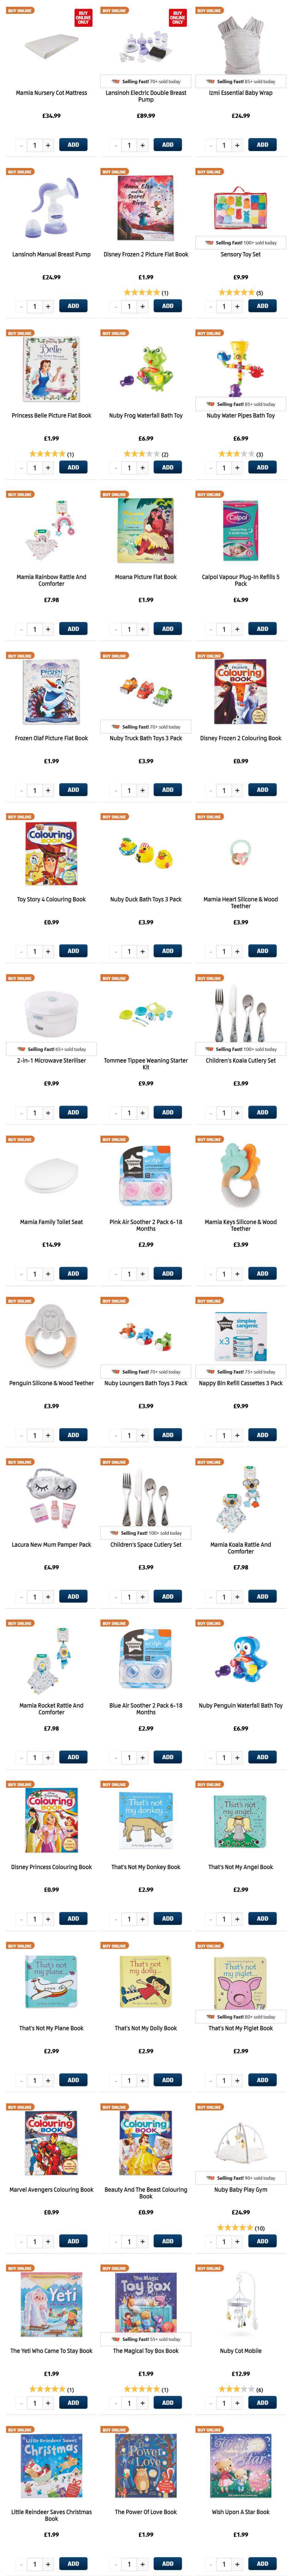 ALDI Baby & Toddler from 14th January 2021 ALDI Thursday Offers